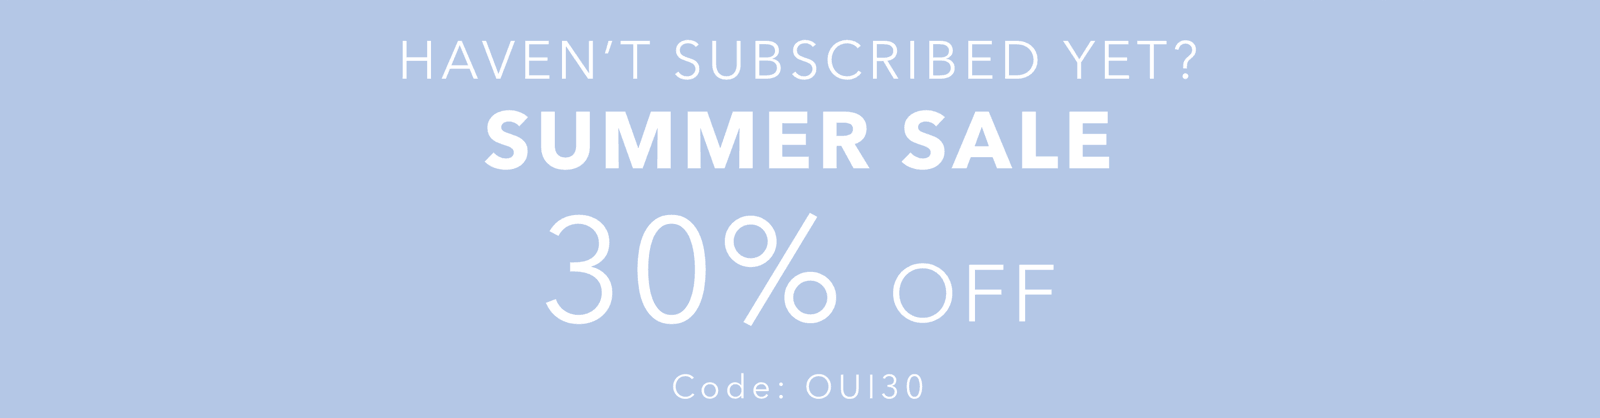 OuiPlease Summer Sale Coupon Code